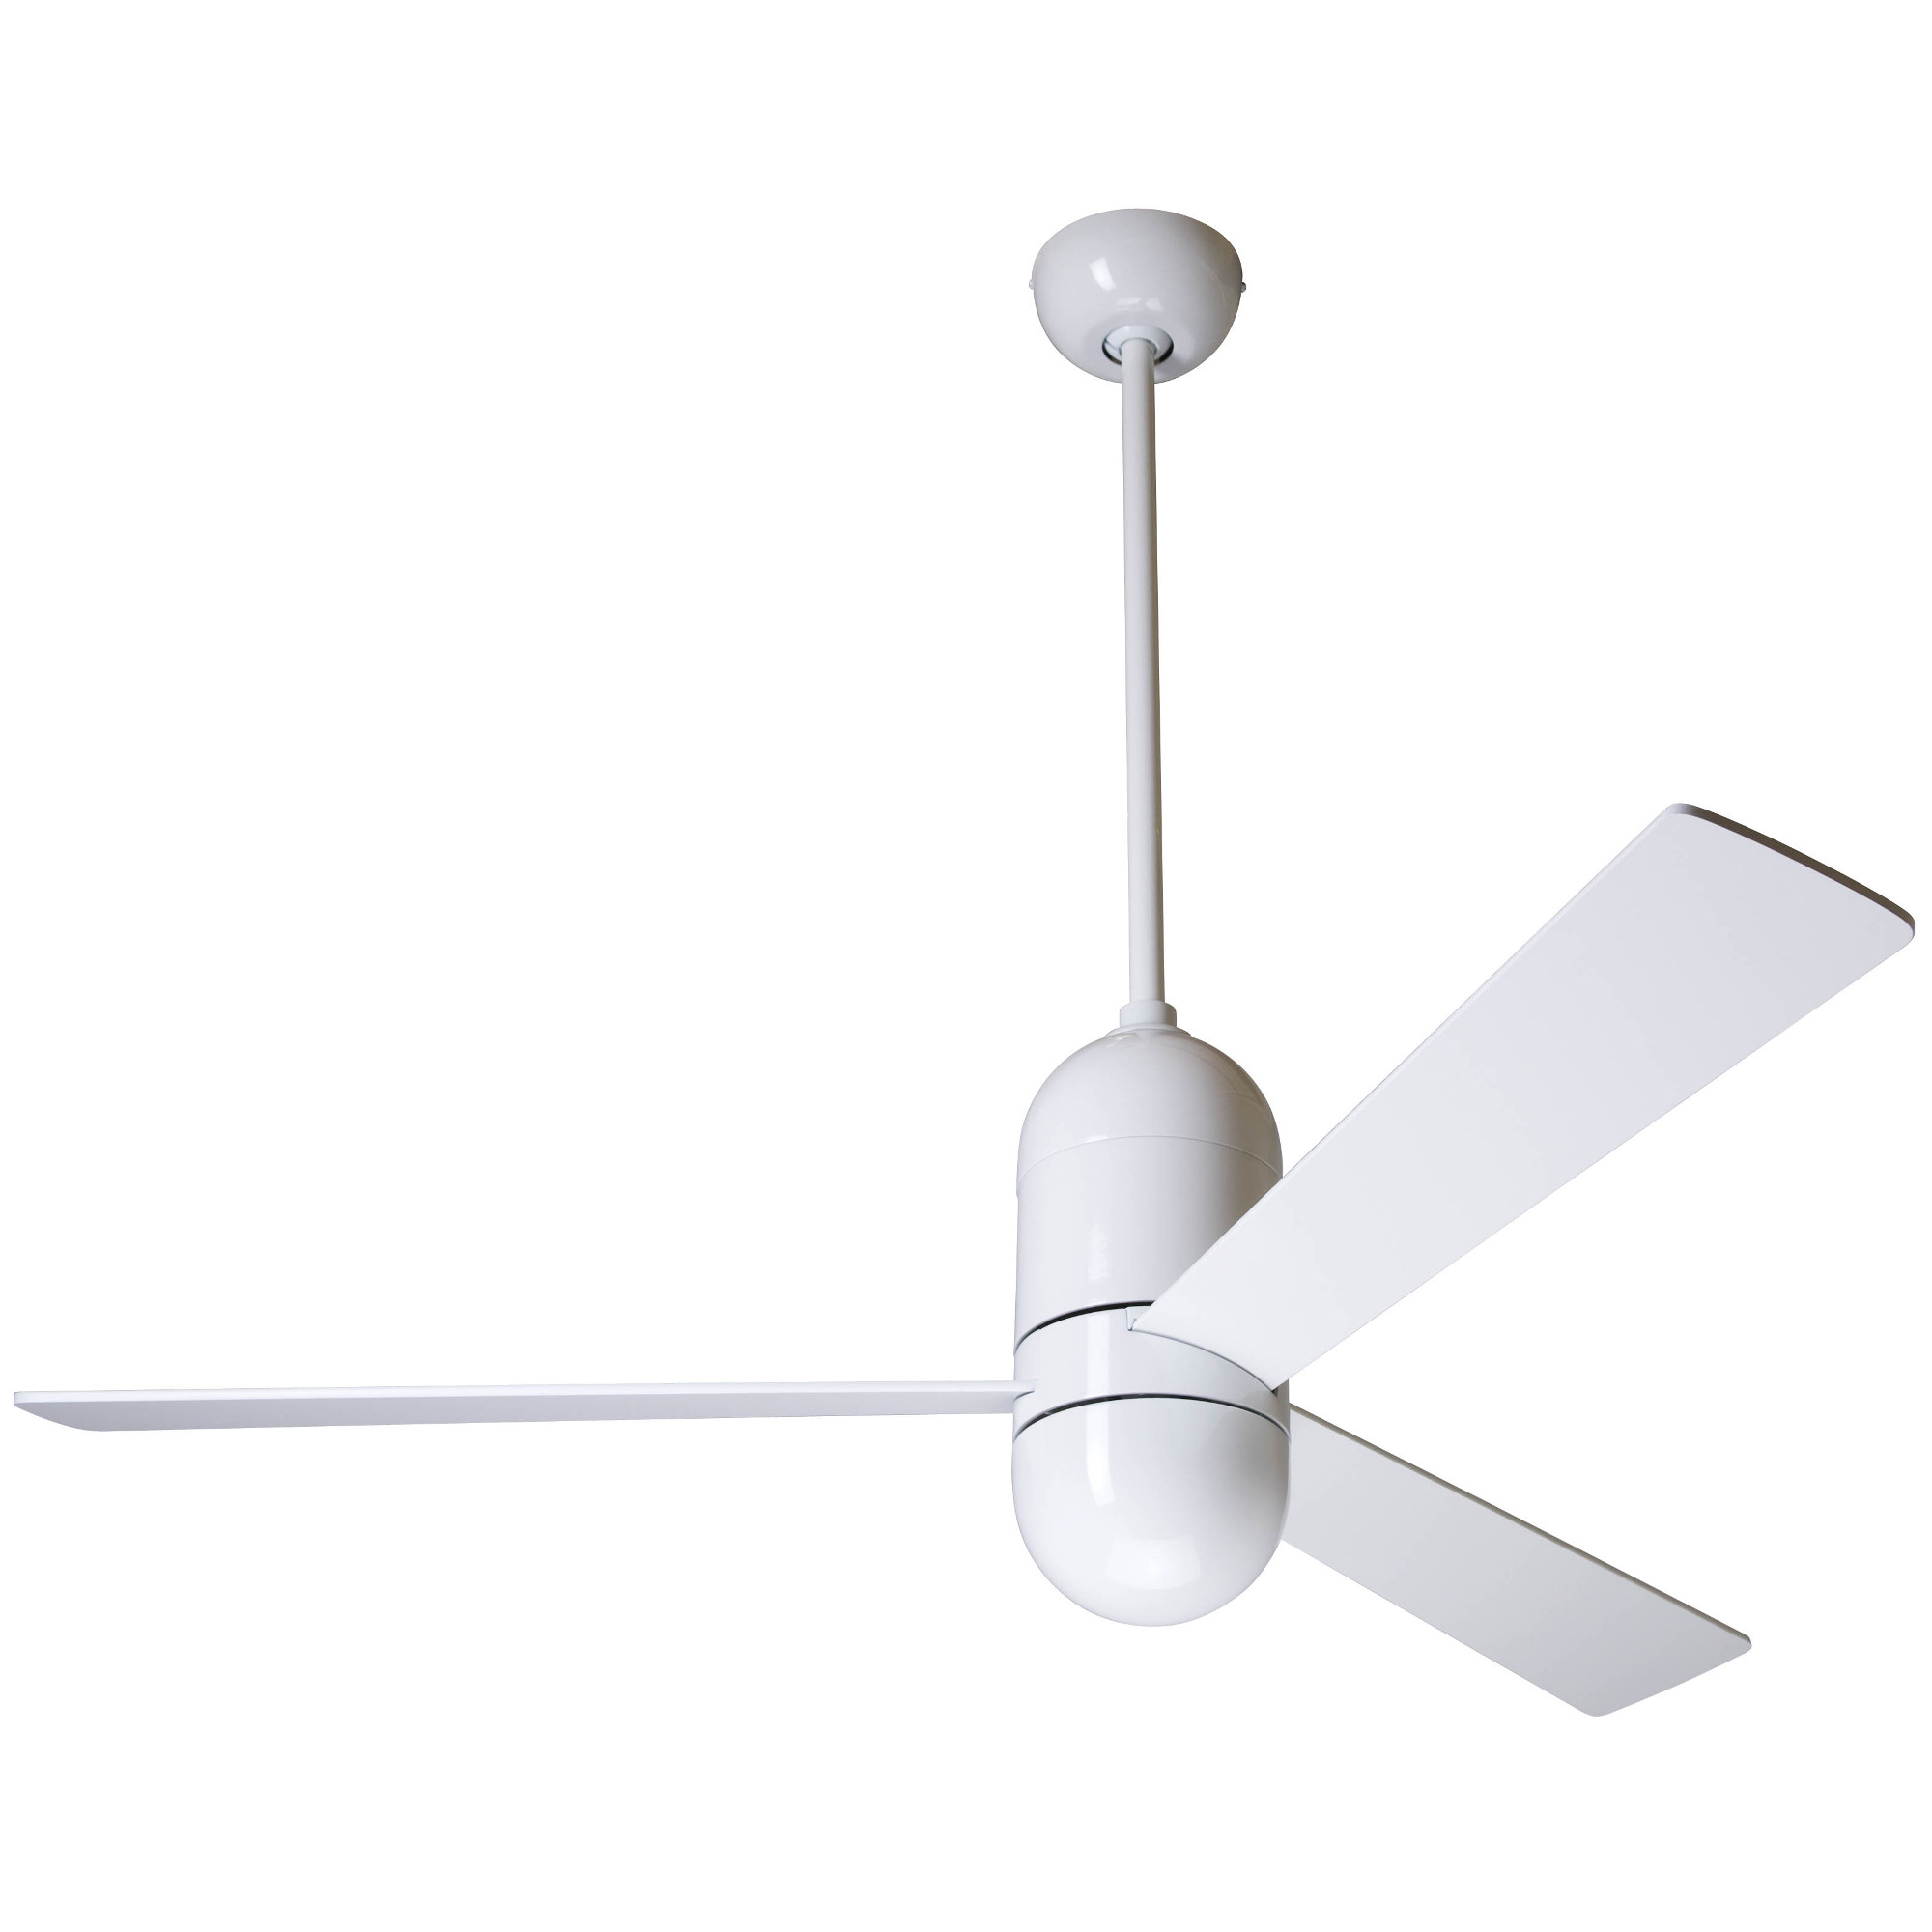 Cirrus Flush Ceiling Fan No Light 003 Control by Modern Fan Co